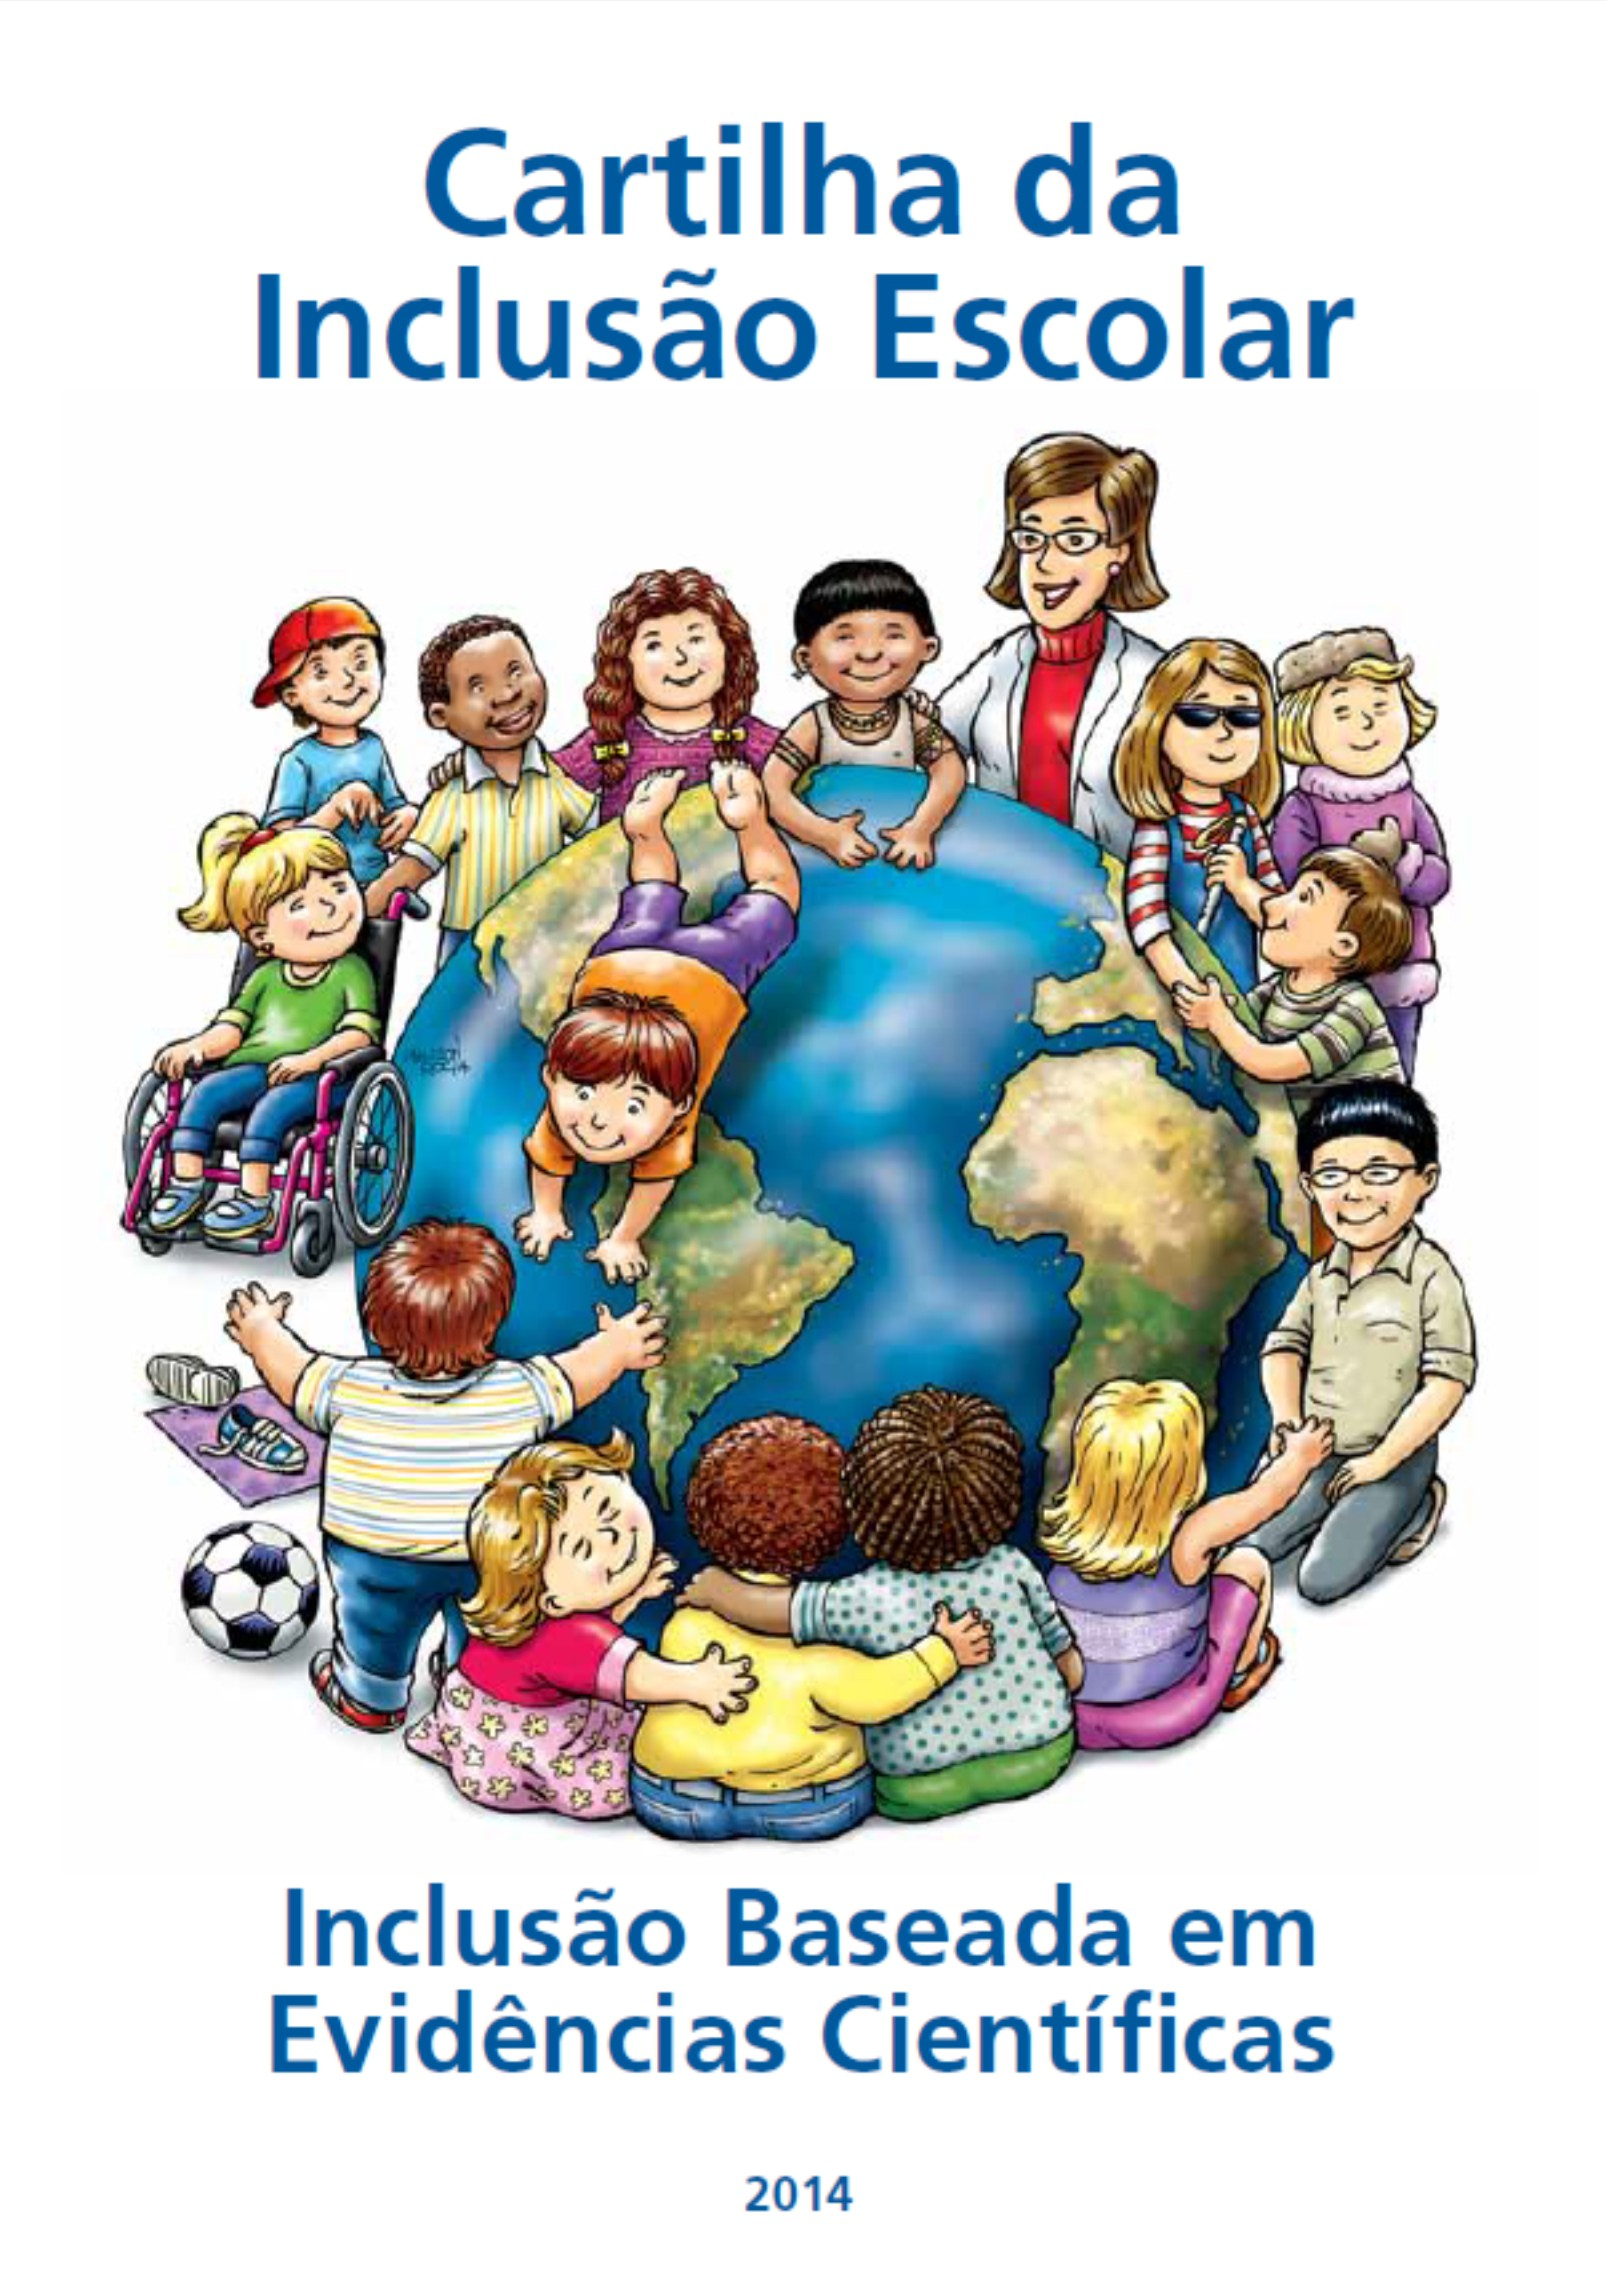 cartilha-da-inclusao-escolar